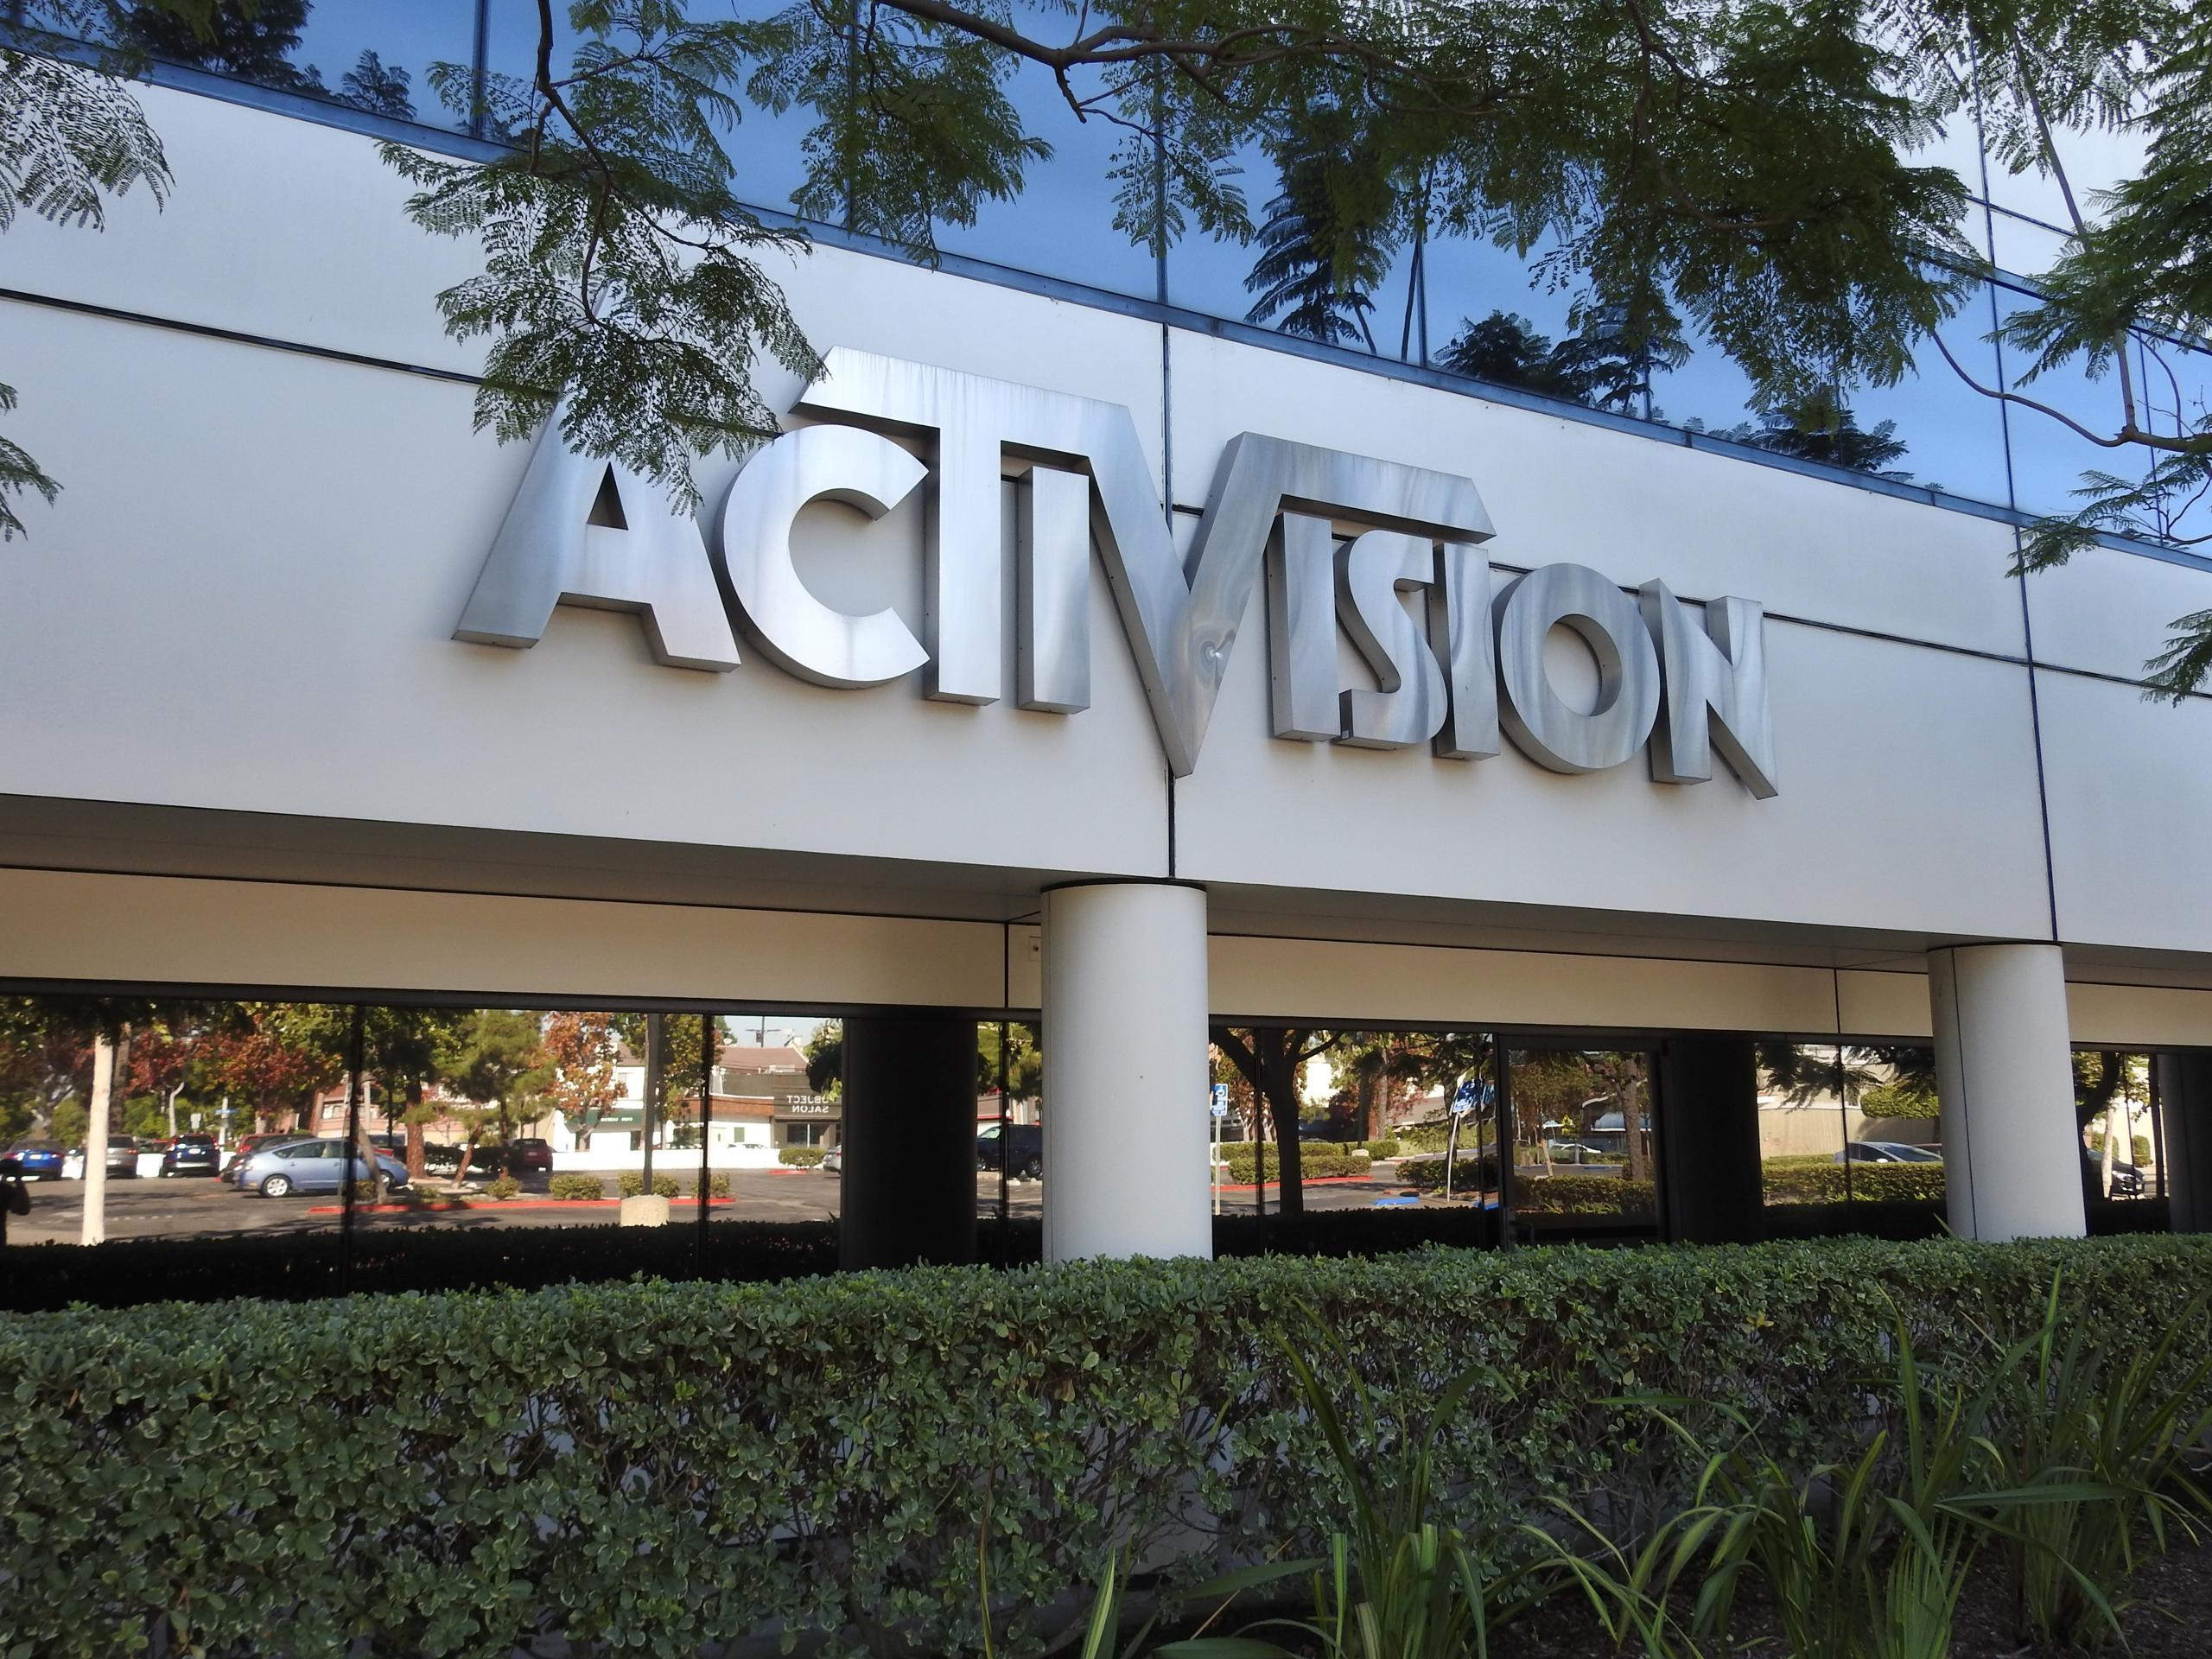 Activision Corporate office